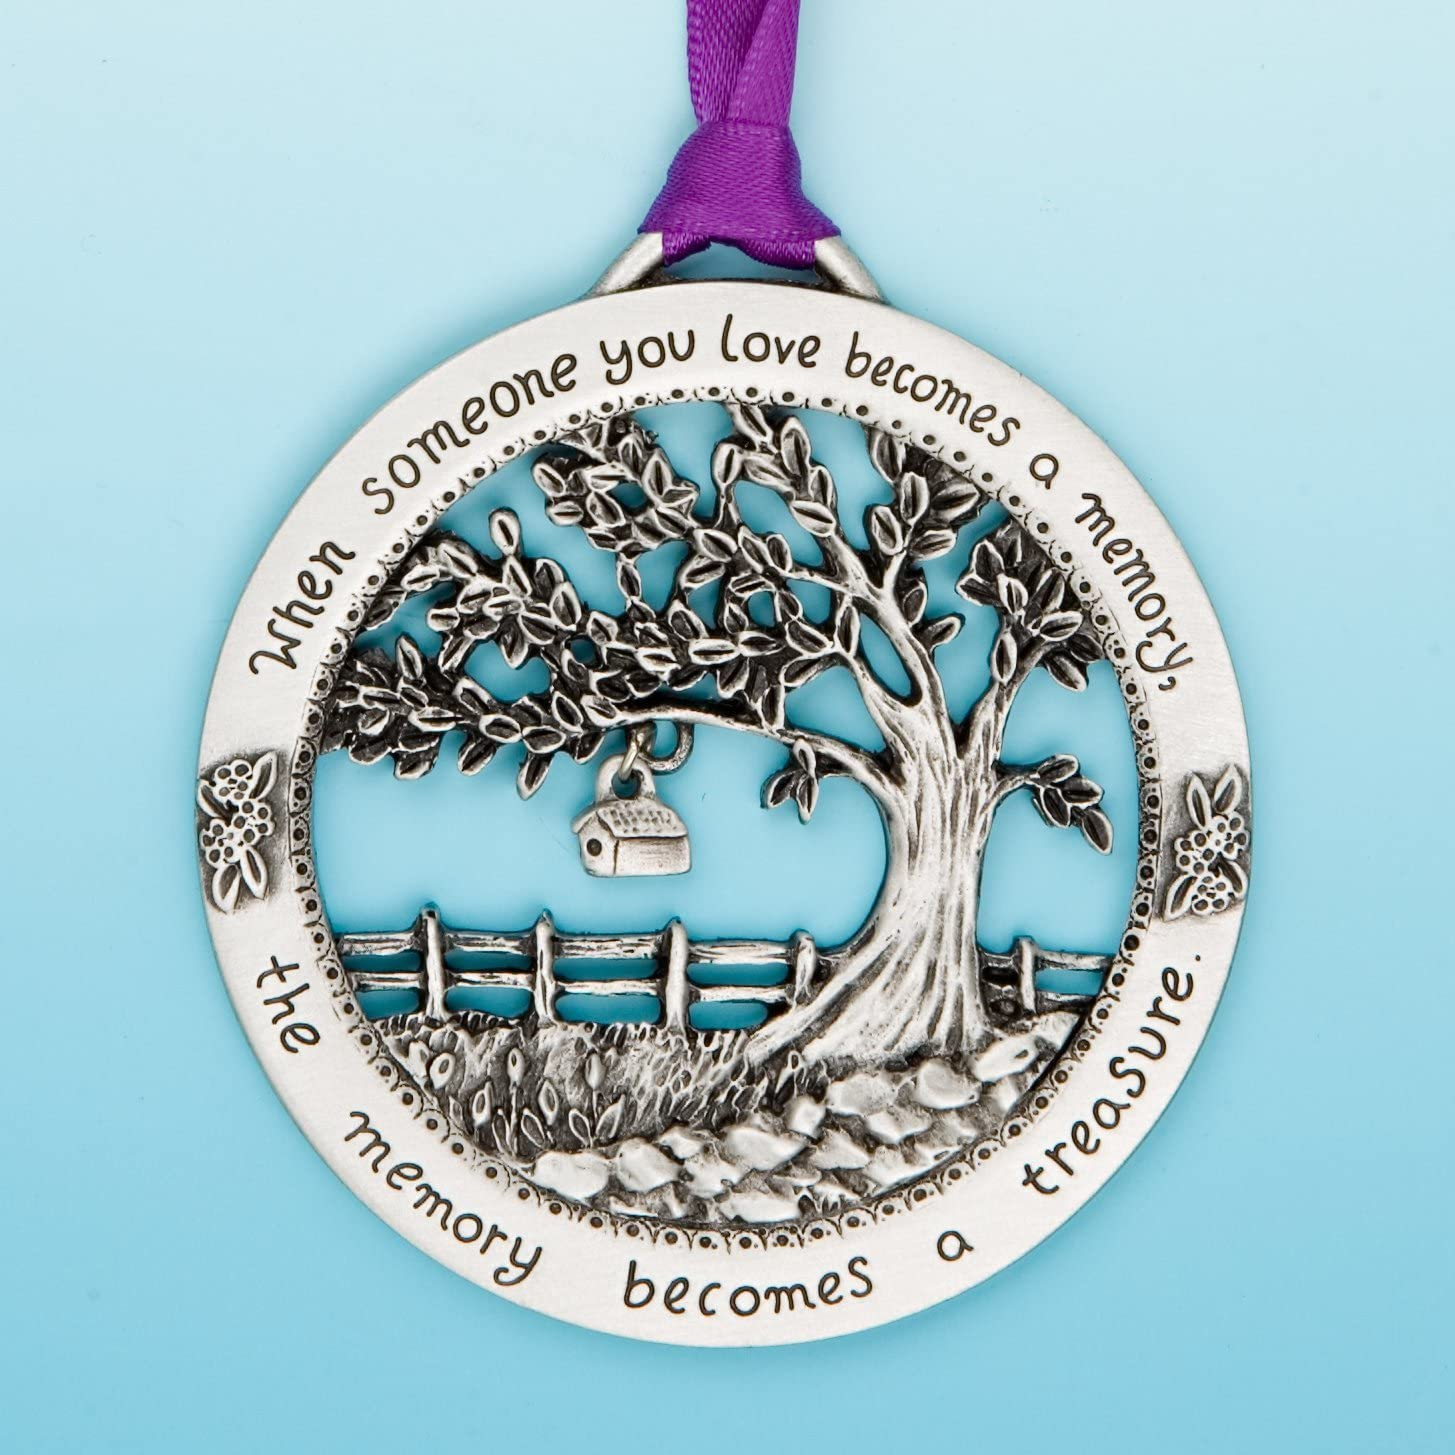 I left you beautiful memories Memorial Ornament Personalized with Photo SALE Christmas Ornament